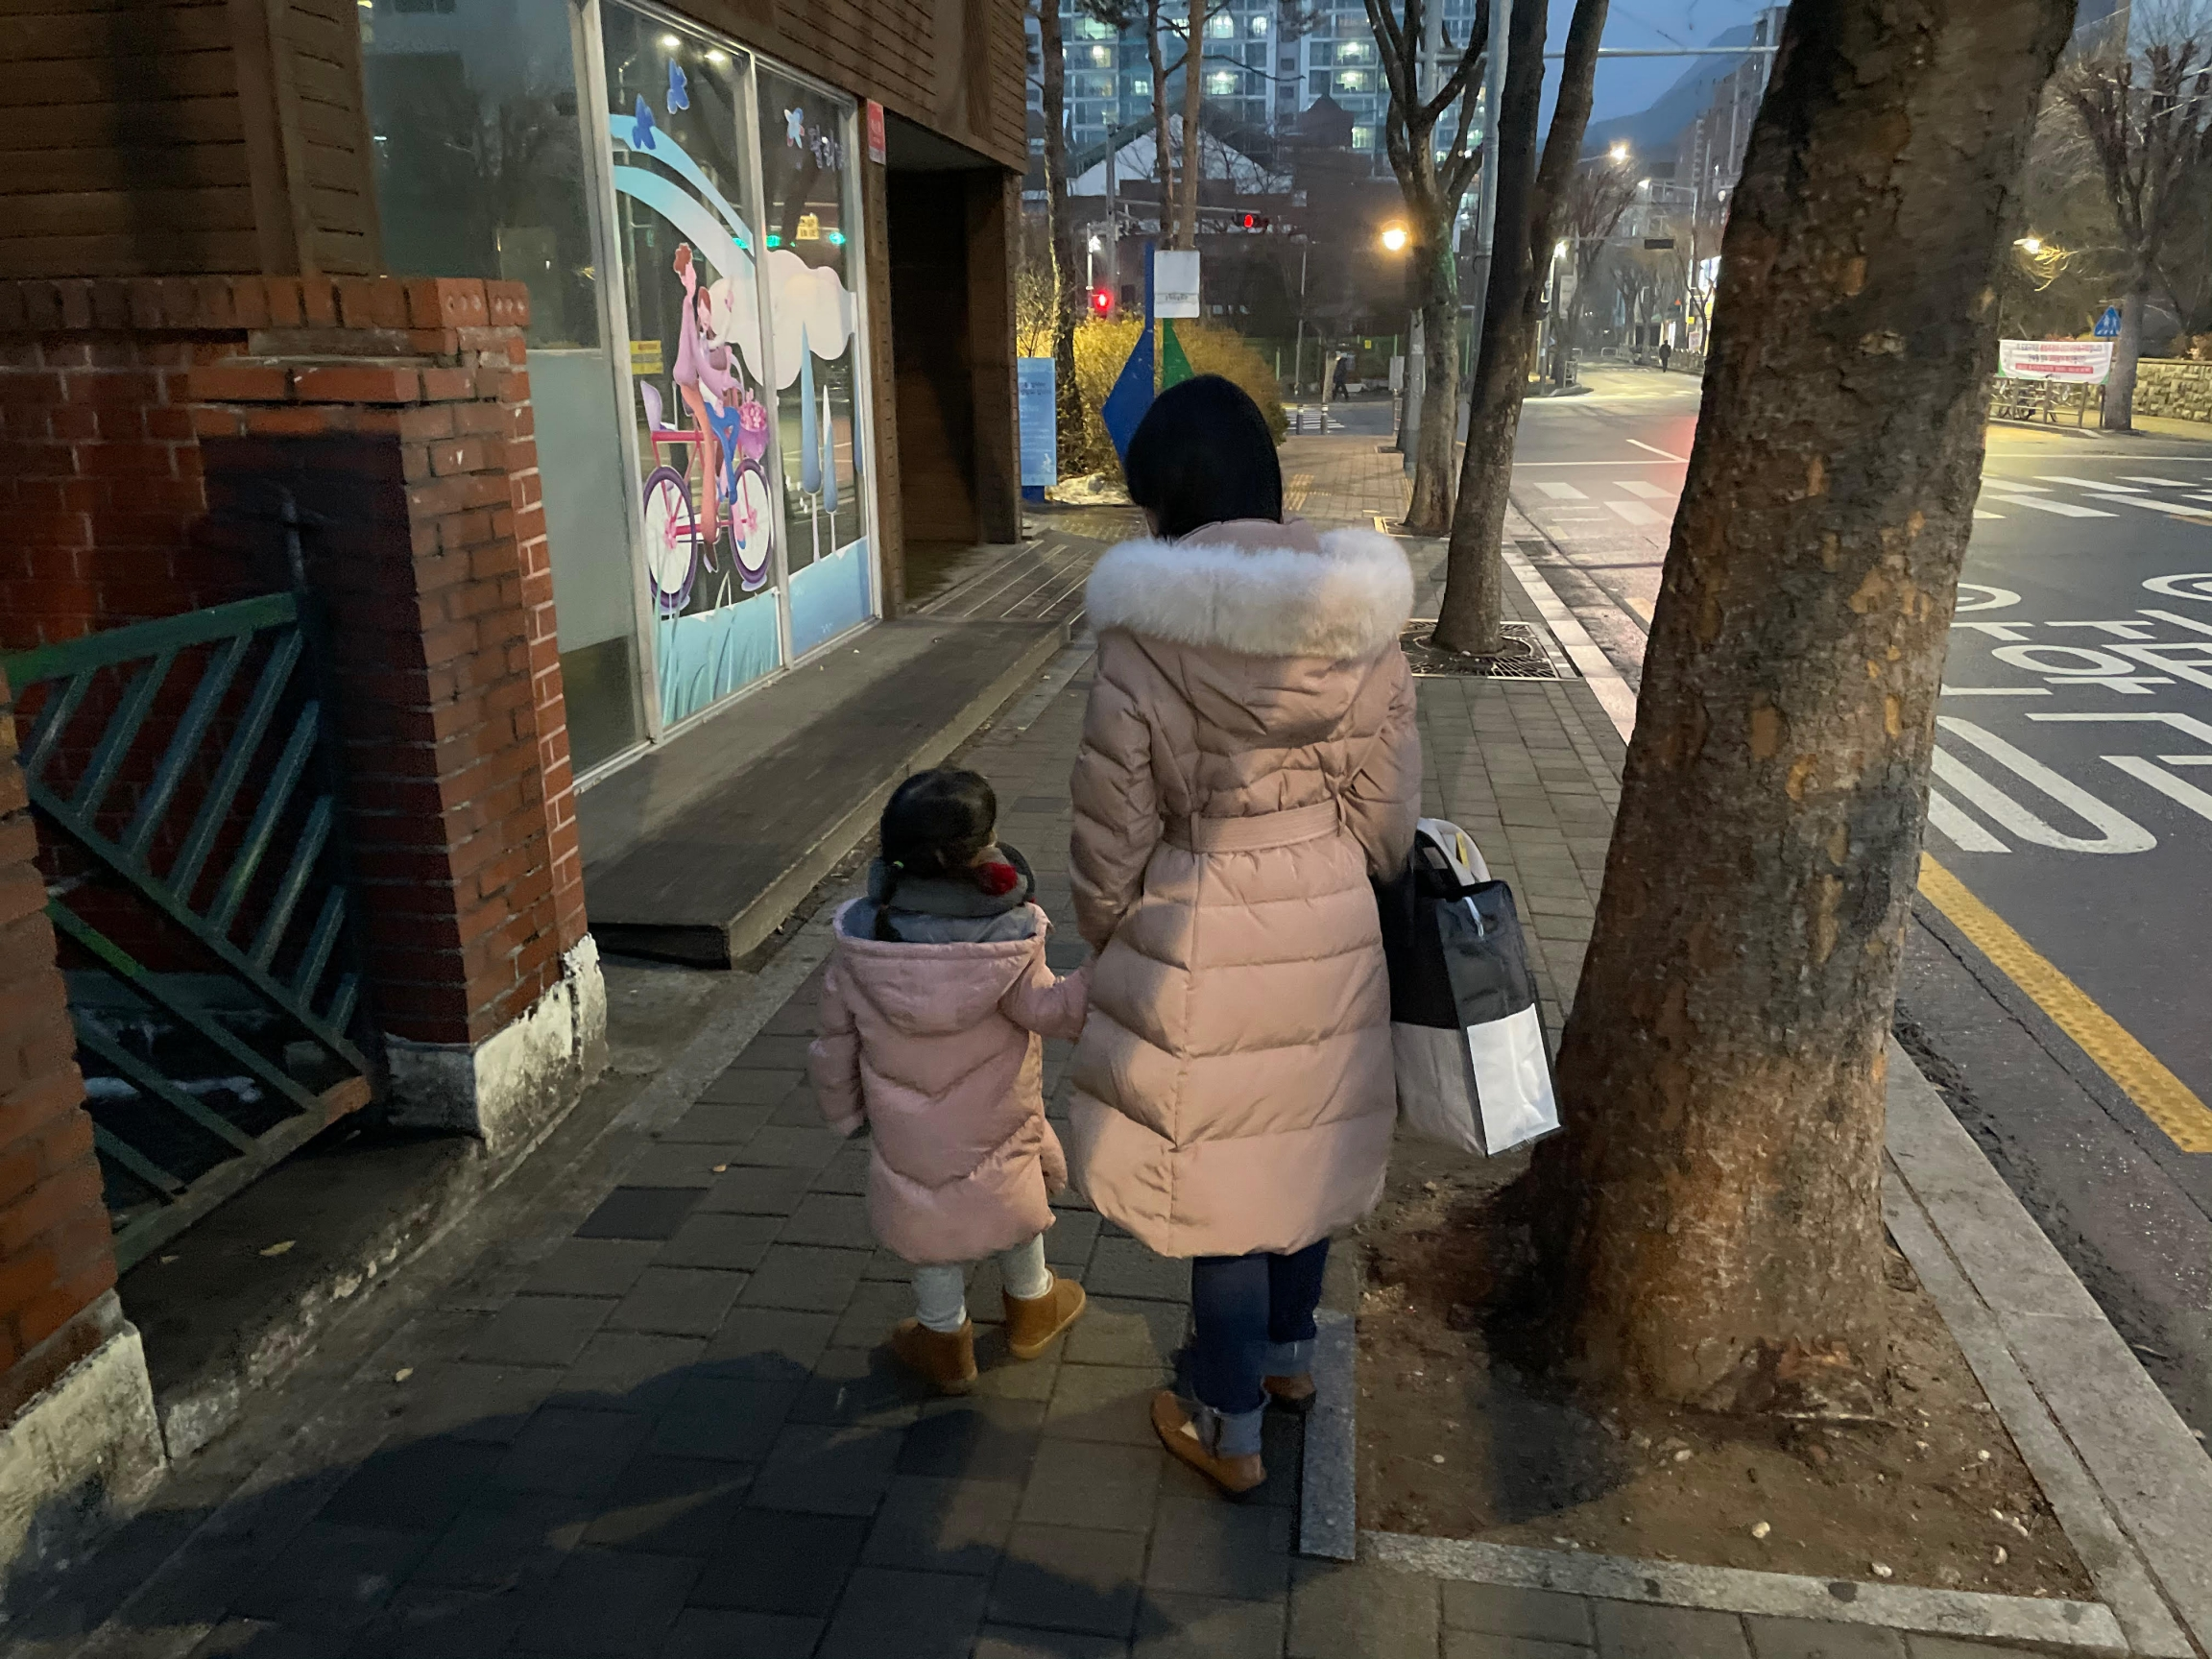 Kim,an advocate at the Korean Unwed Mothers Families' Association, a support group in Seoul,South Korea, walks with her daughter. She asked that her full name not be used due to the stigma associated with being a single mother.